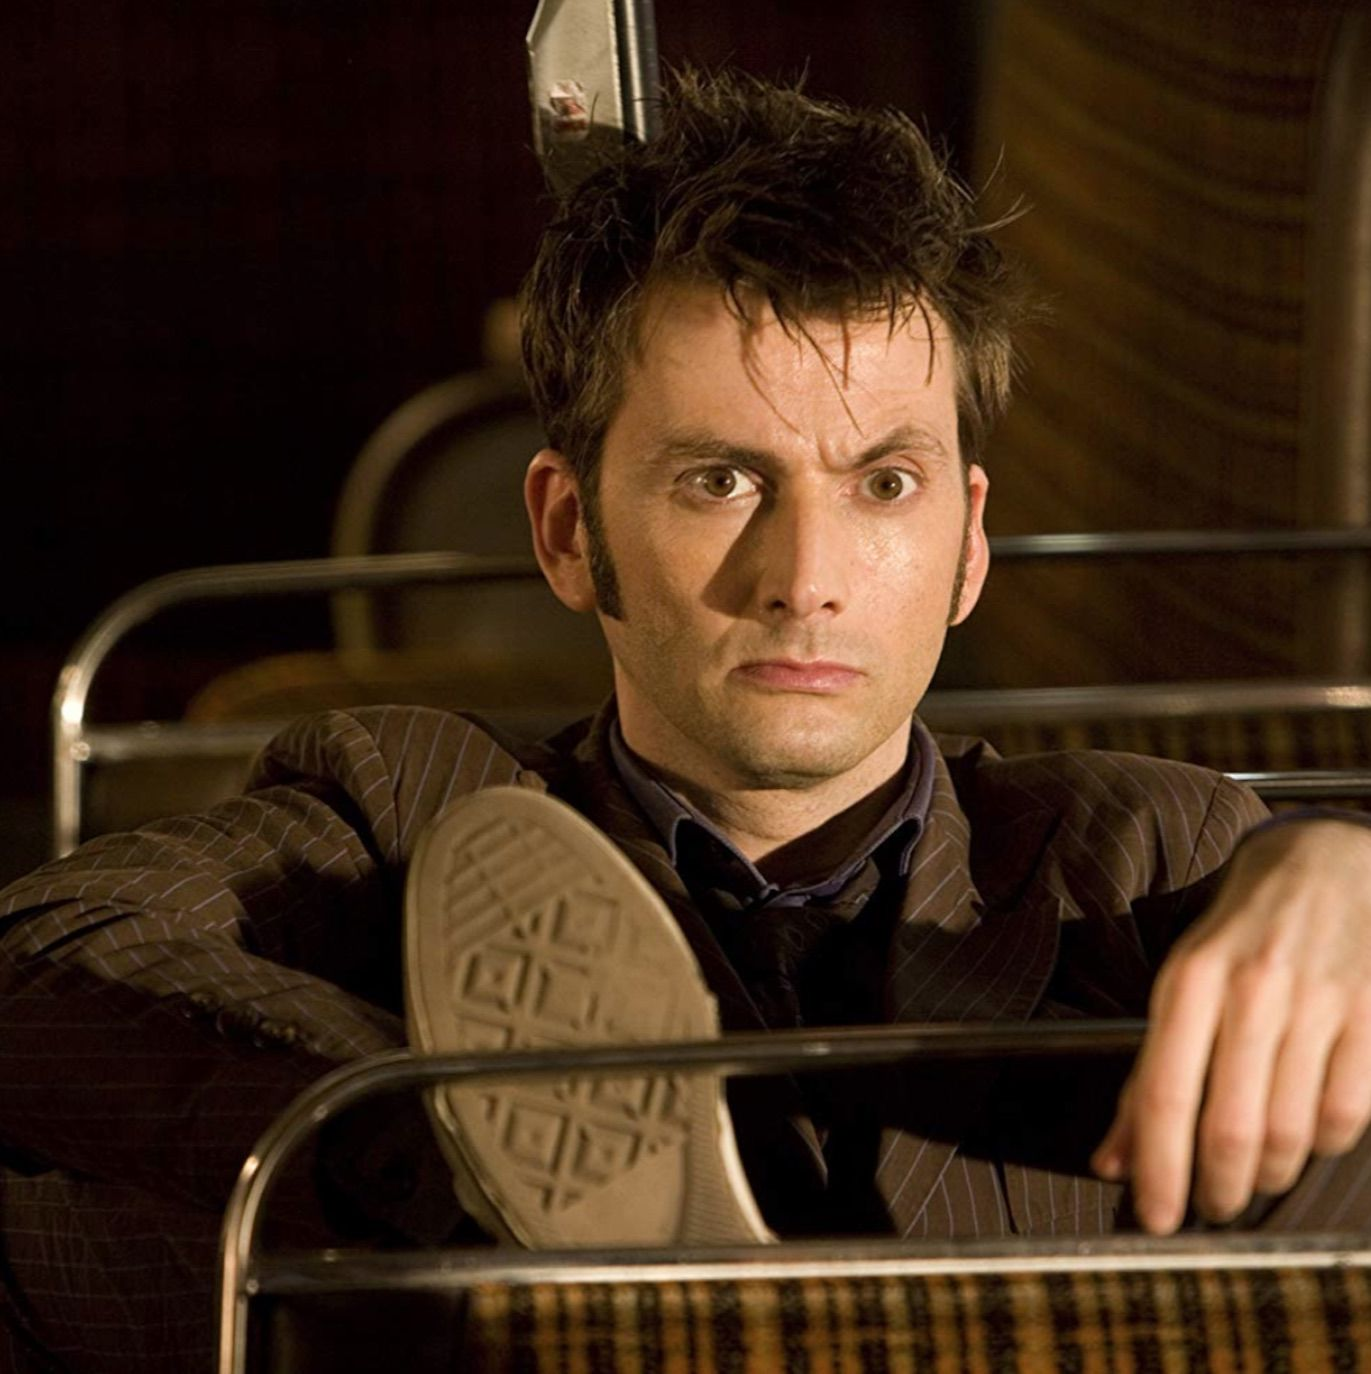 David Tennant—and his beloved Converse sneakers—as Doctor Who's Tenth Doctor.